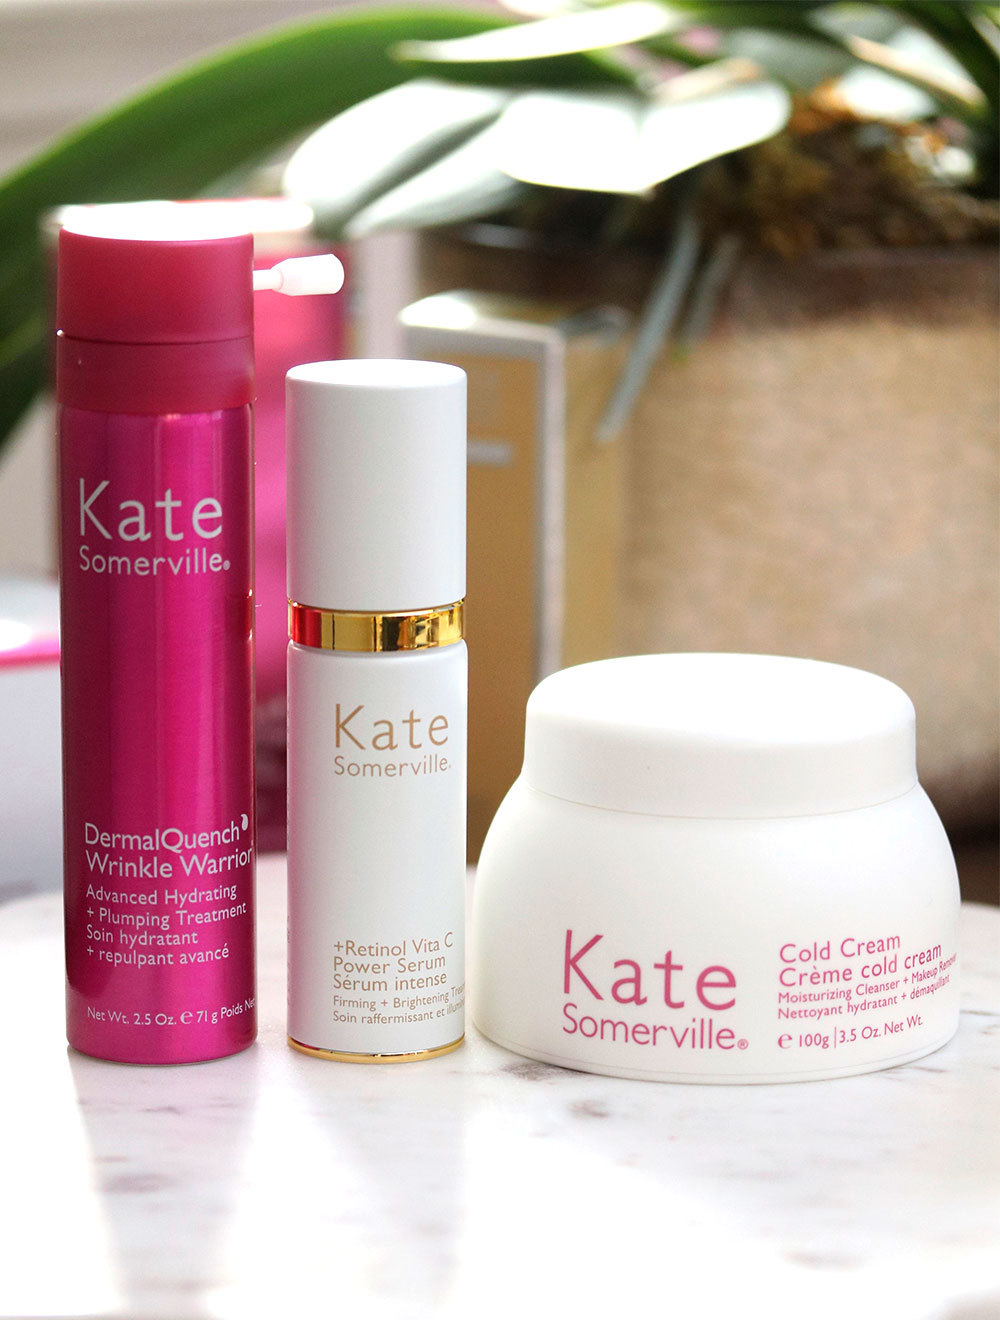 kate somerville skin care